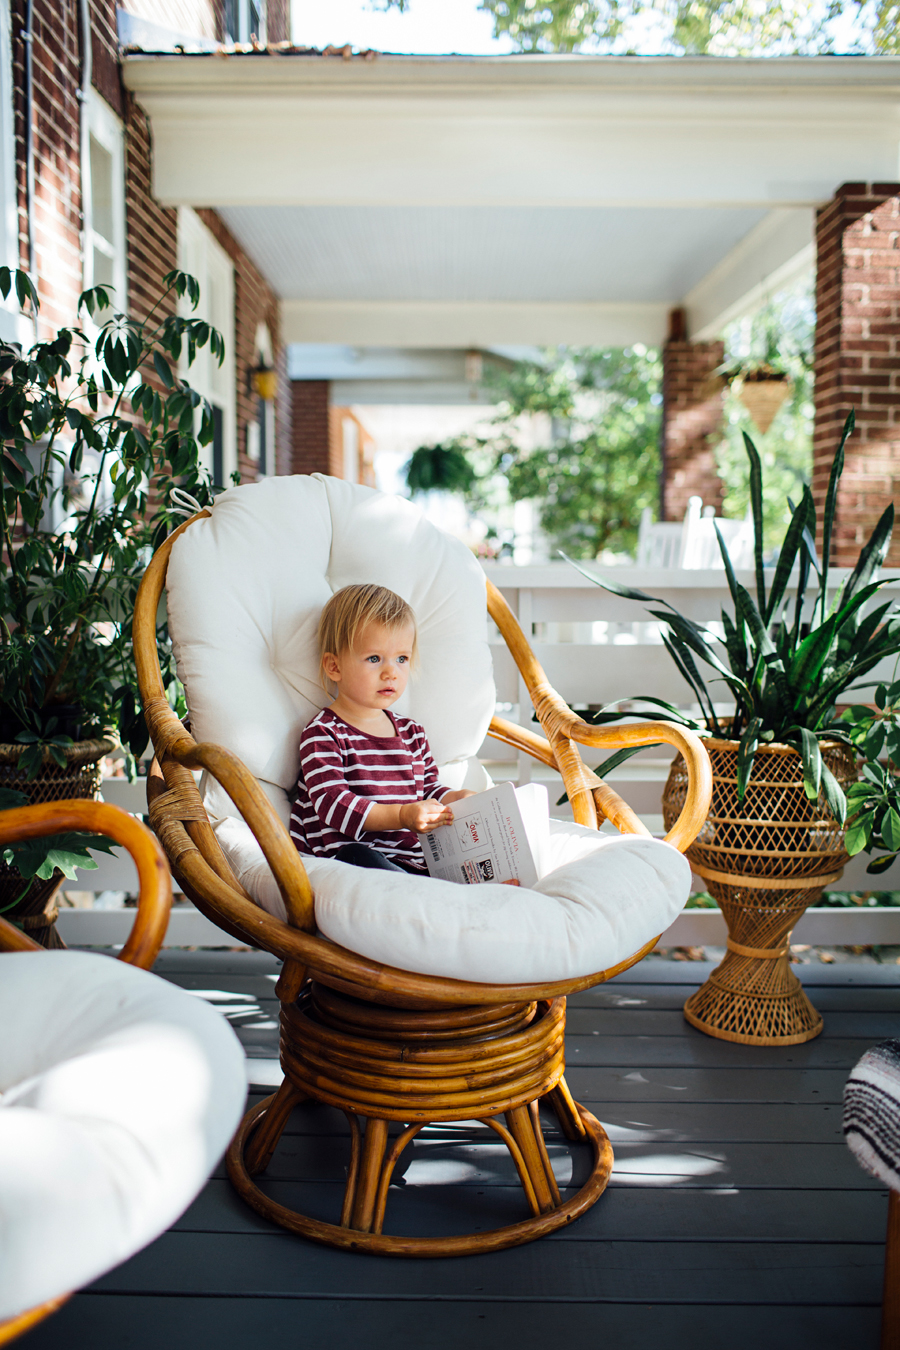 brookecourtney_munchkin_frontporch-14.jpg